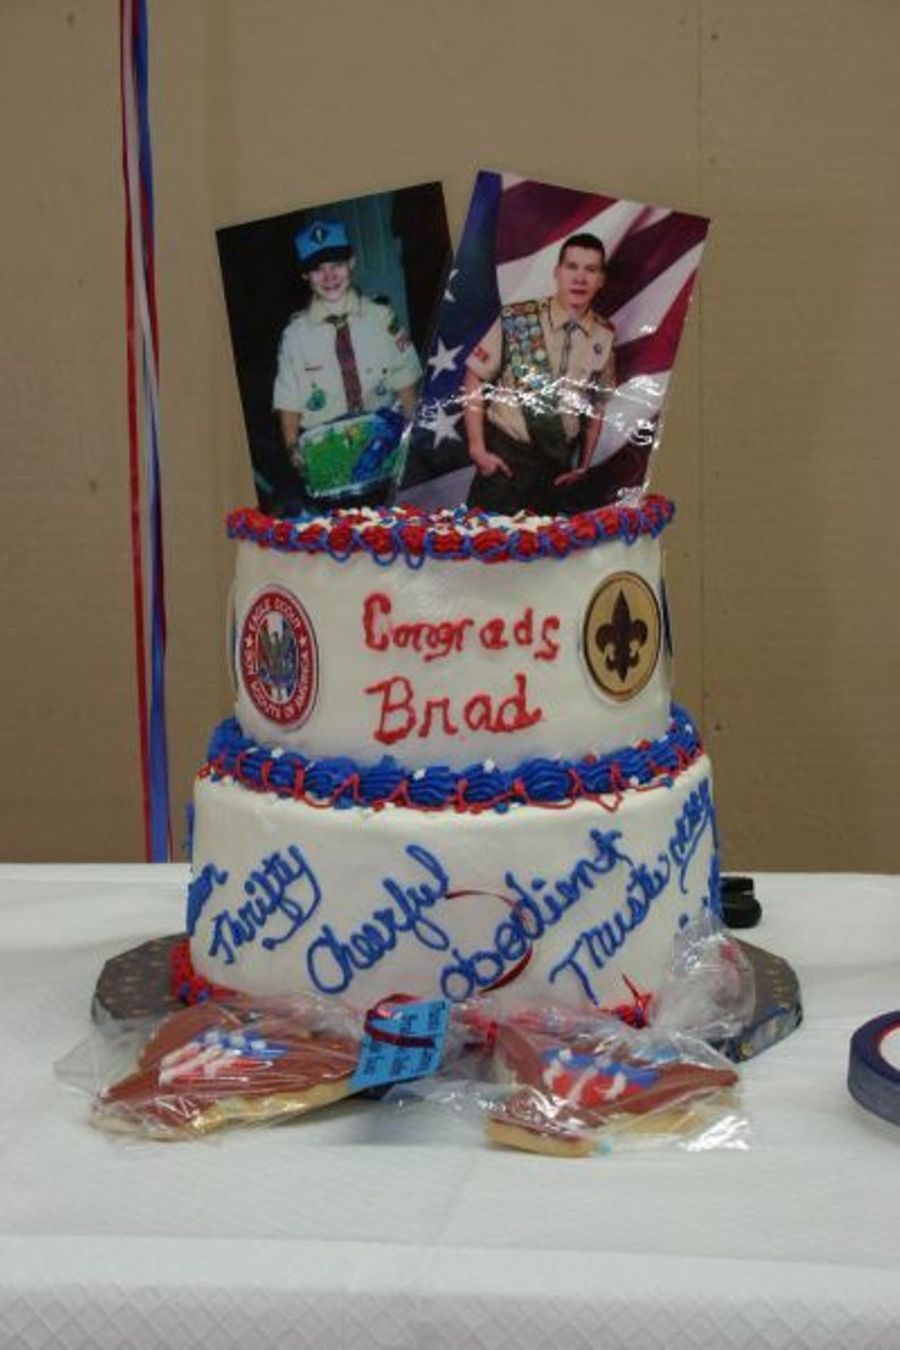 Eagle Scout Cake And Cookie on Cake Central